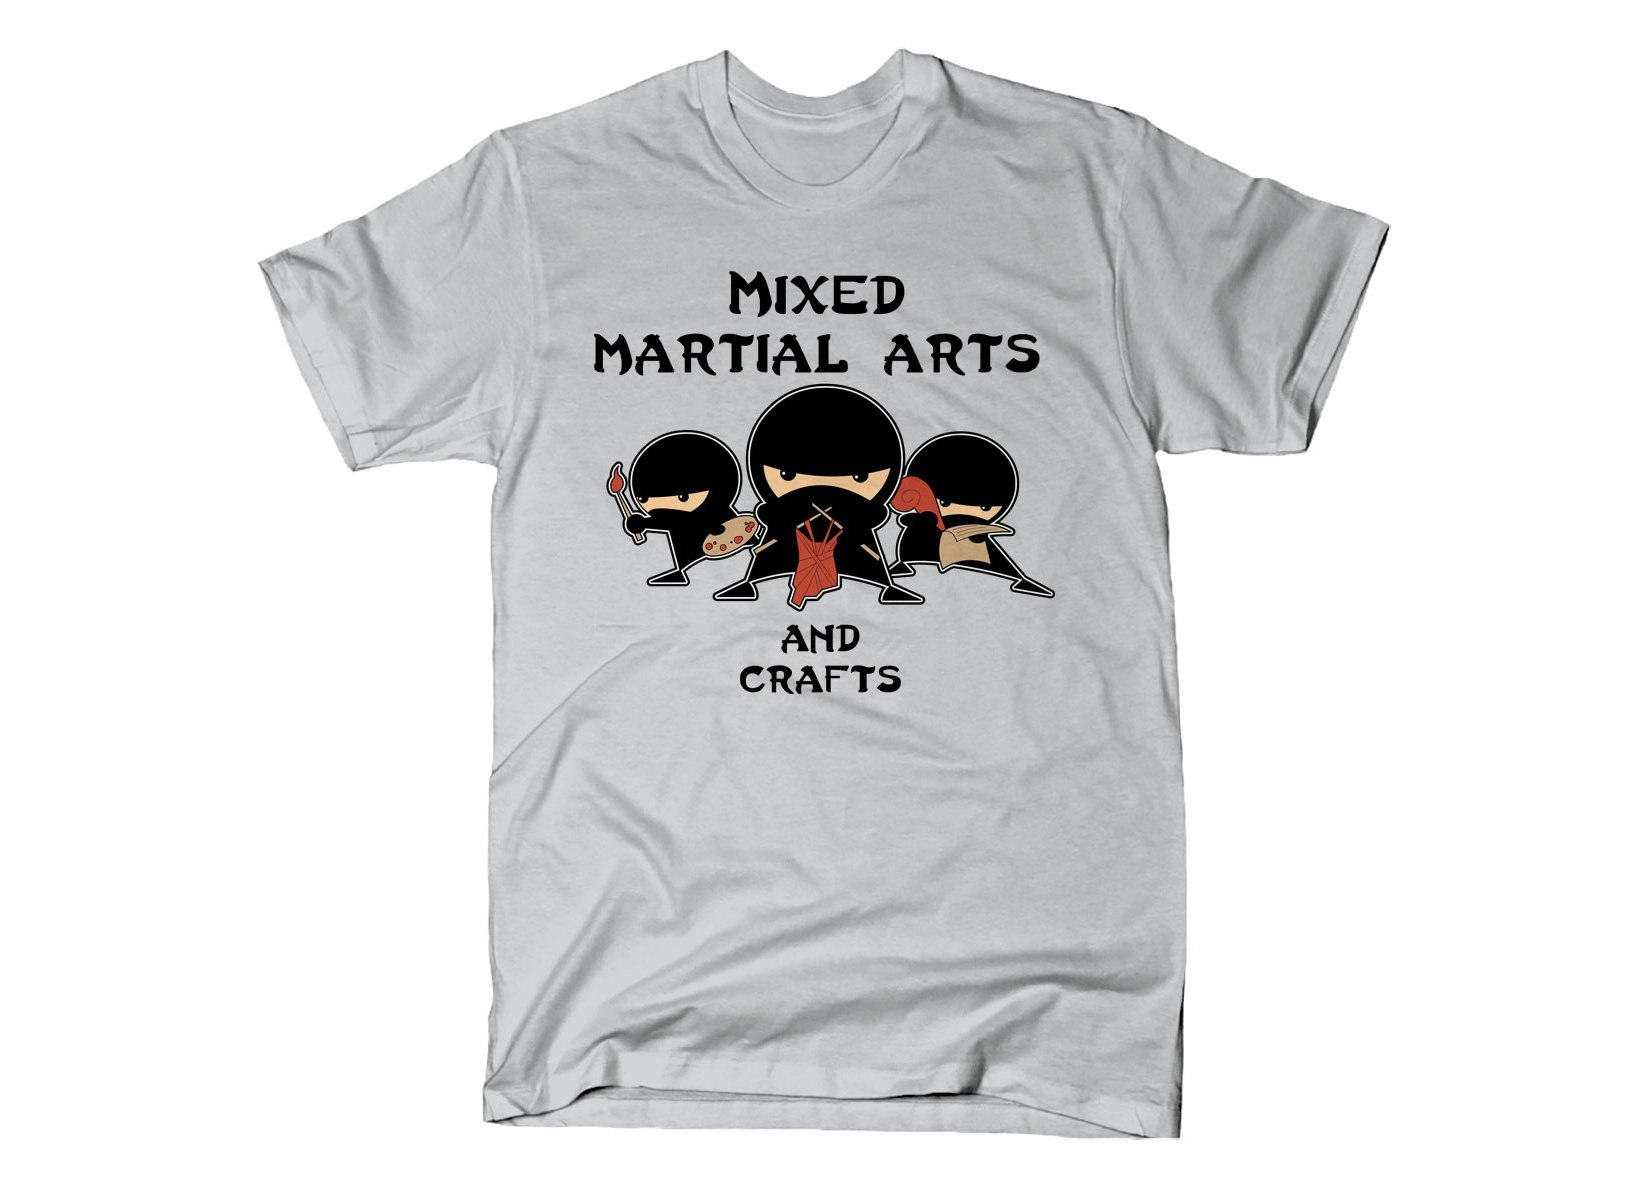 Mixed Martial Arts and Crafts on Mens T-Shirt